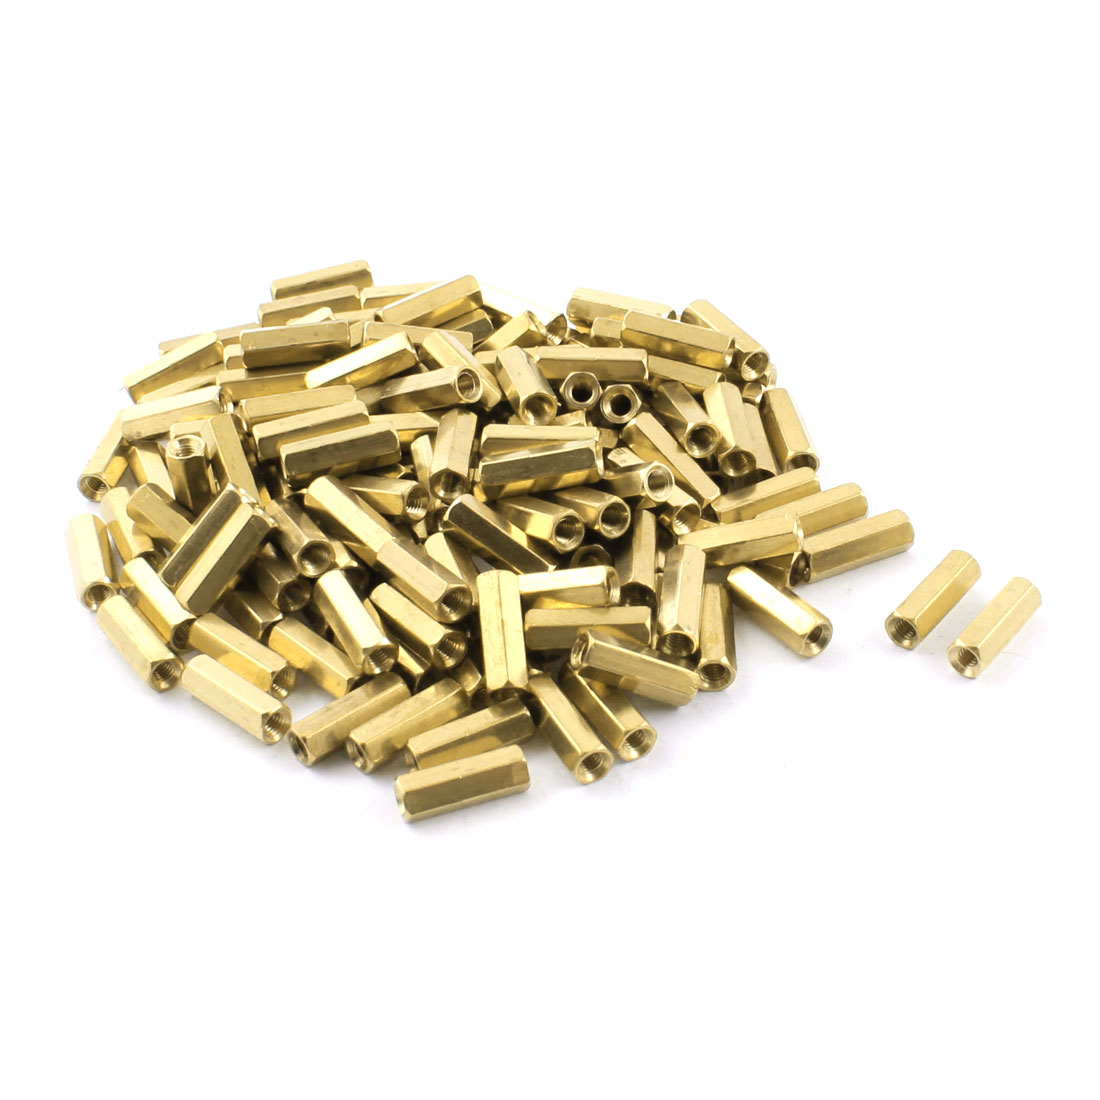 150 Pcs M3 x 14mm Female Thread Double Ended Gold Tone Brass Pillar PCB Standoff Hexagonal Nut Spacer